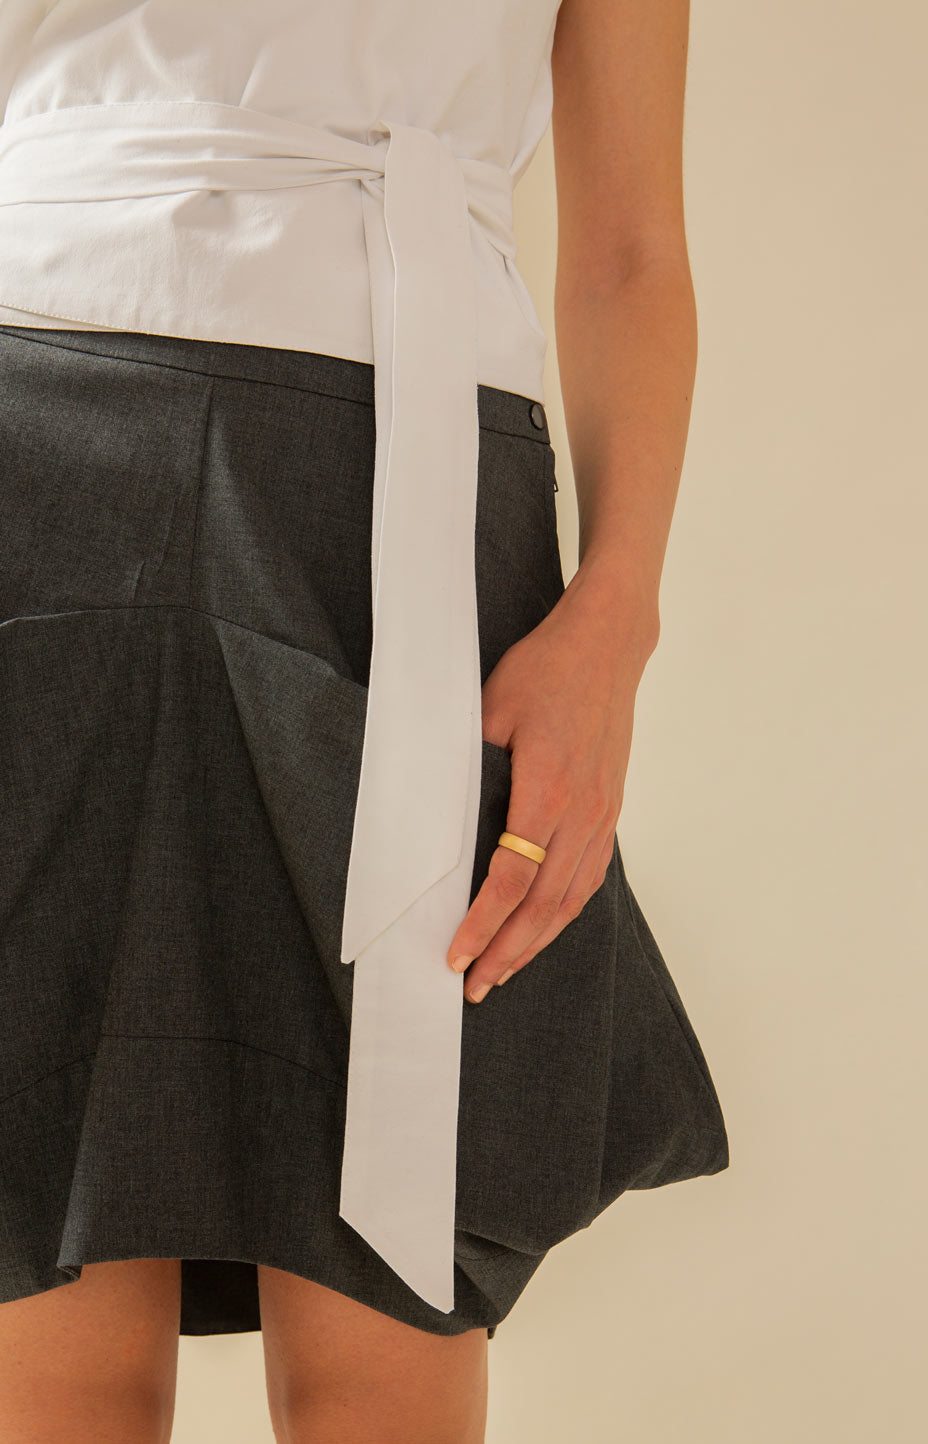 Minileija Skirt Grey - Bottoms - TAUKO - TAUKODESIGN